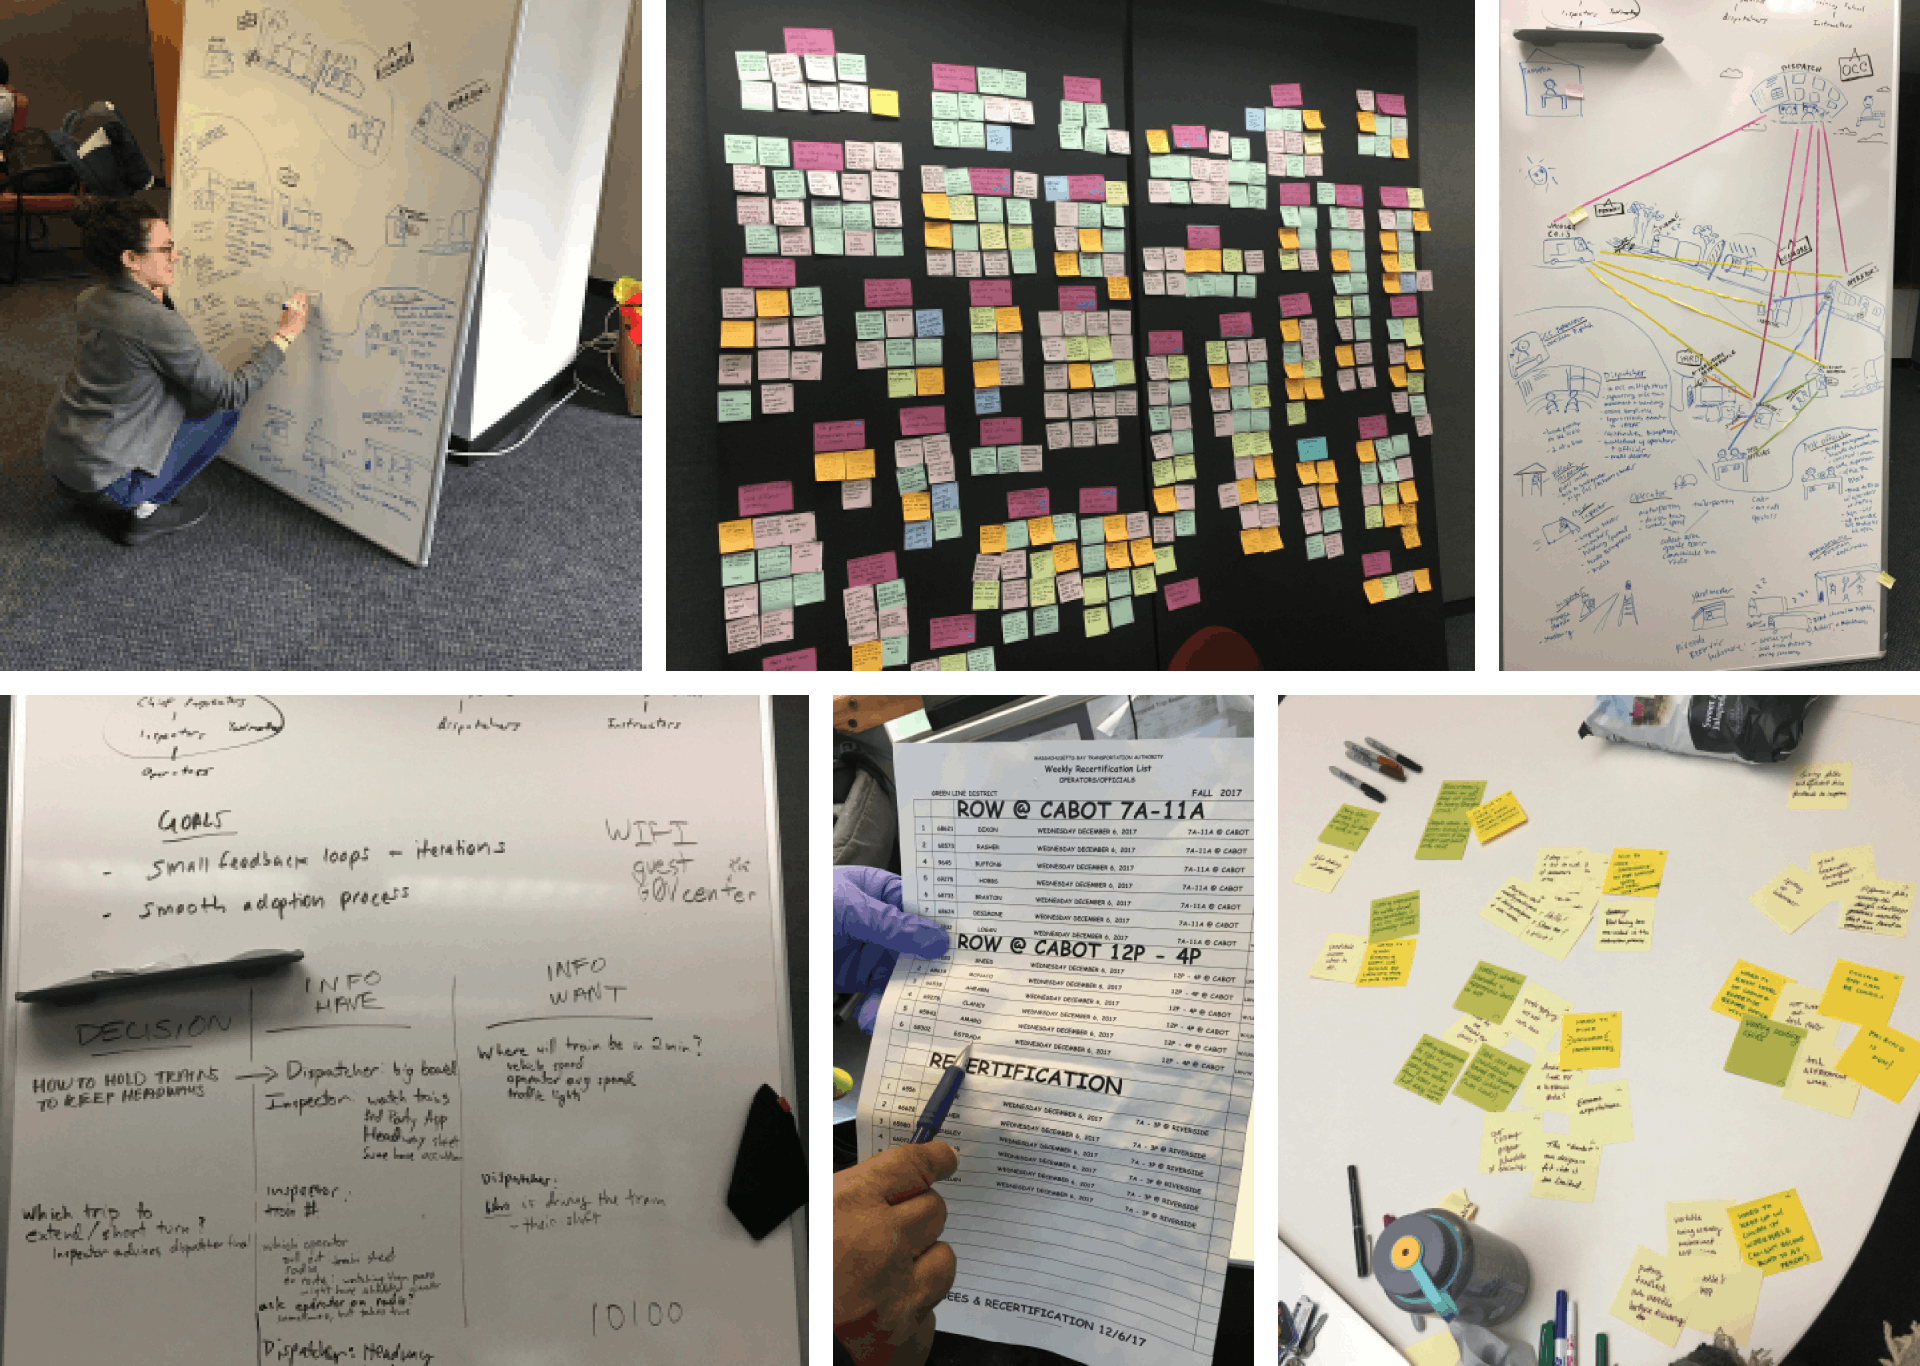 Six photos of the MBTA design workshop; a designer drawing a user journey, a wall of organized sticky notes, a mind map on a whiteboard, notes on a whiteboard, a paper form, sticky notes on a meeting table.